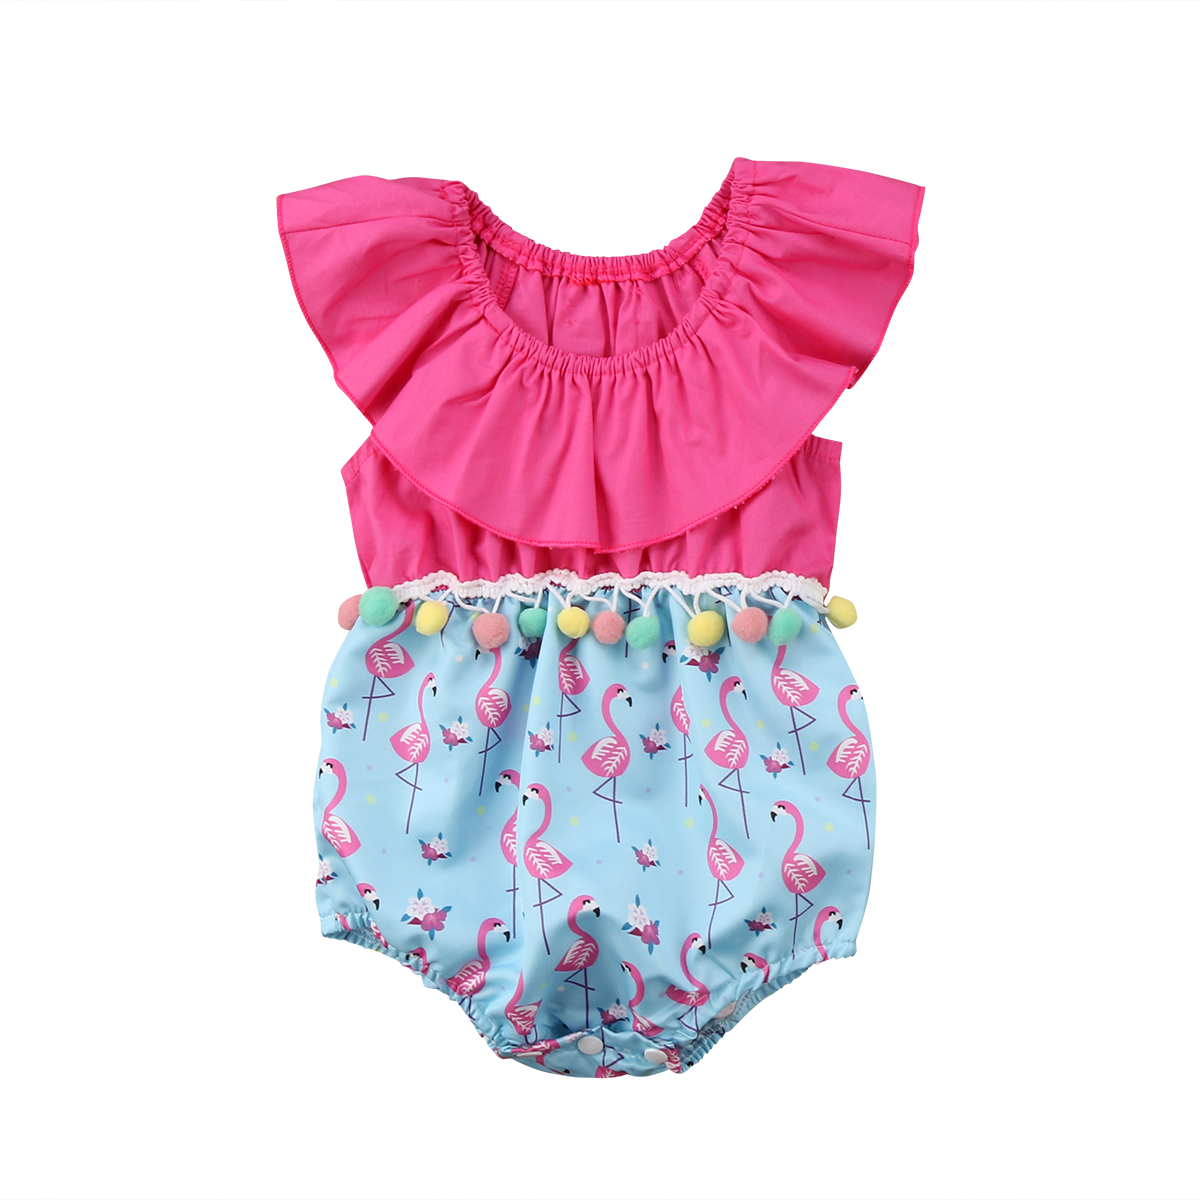 Pudcoco Newborn Kids Baby Girl   Romper   Cute Flamingo print POM POM   Romper   infant baby girls clothes Outfit